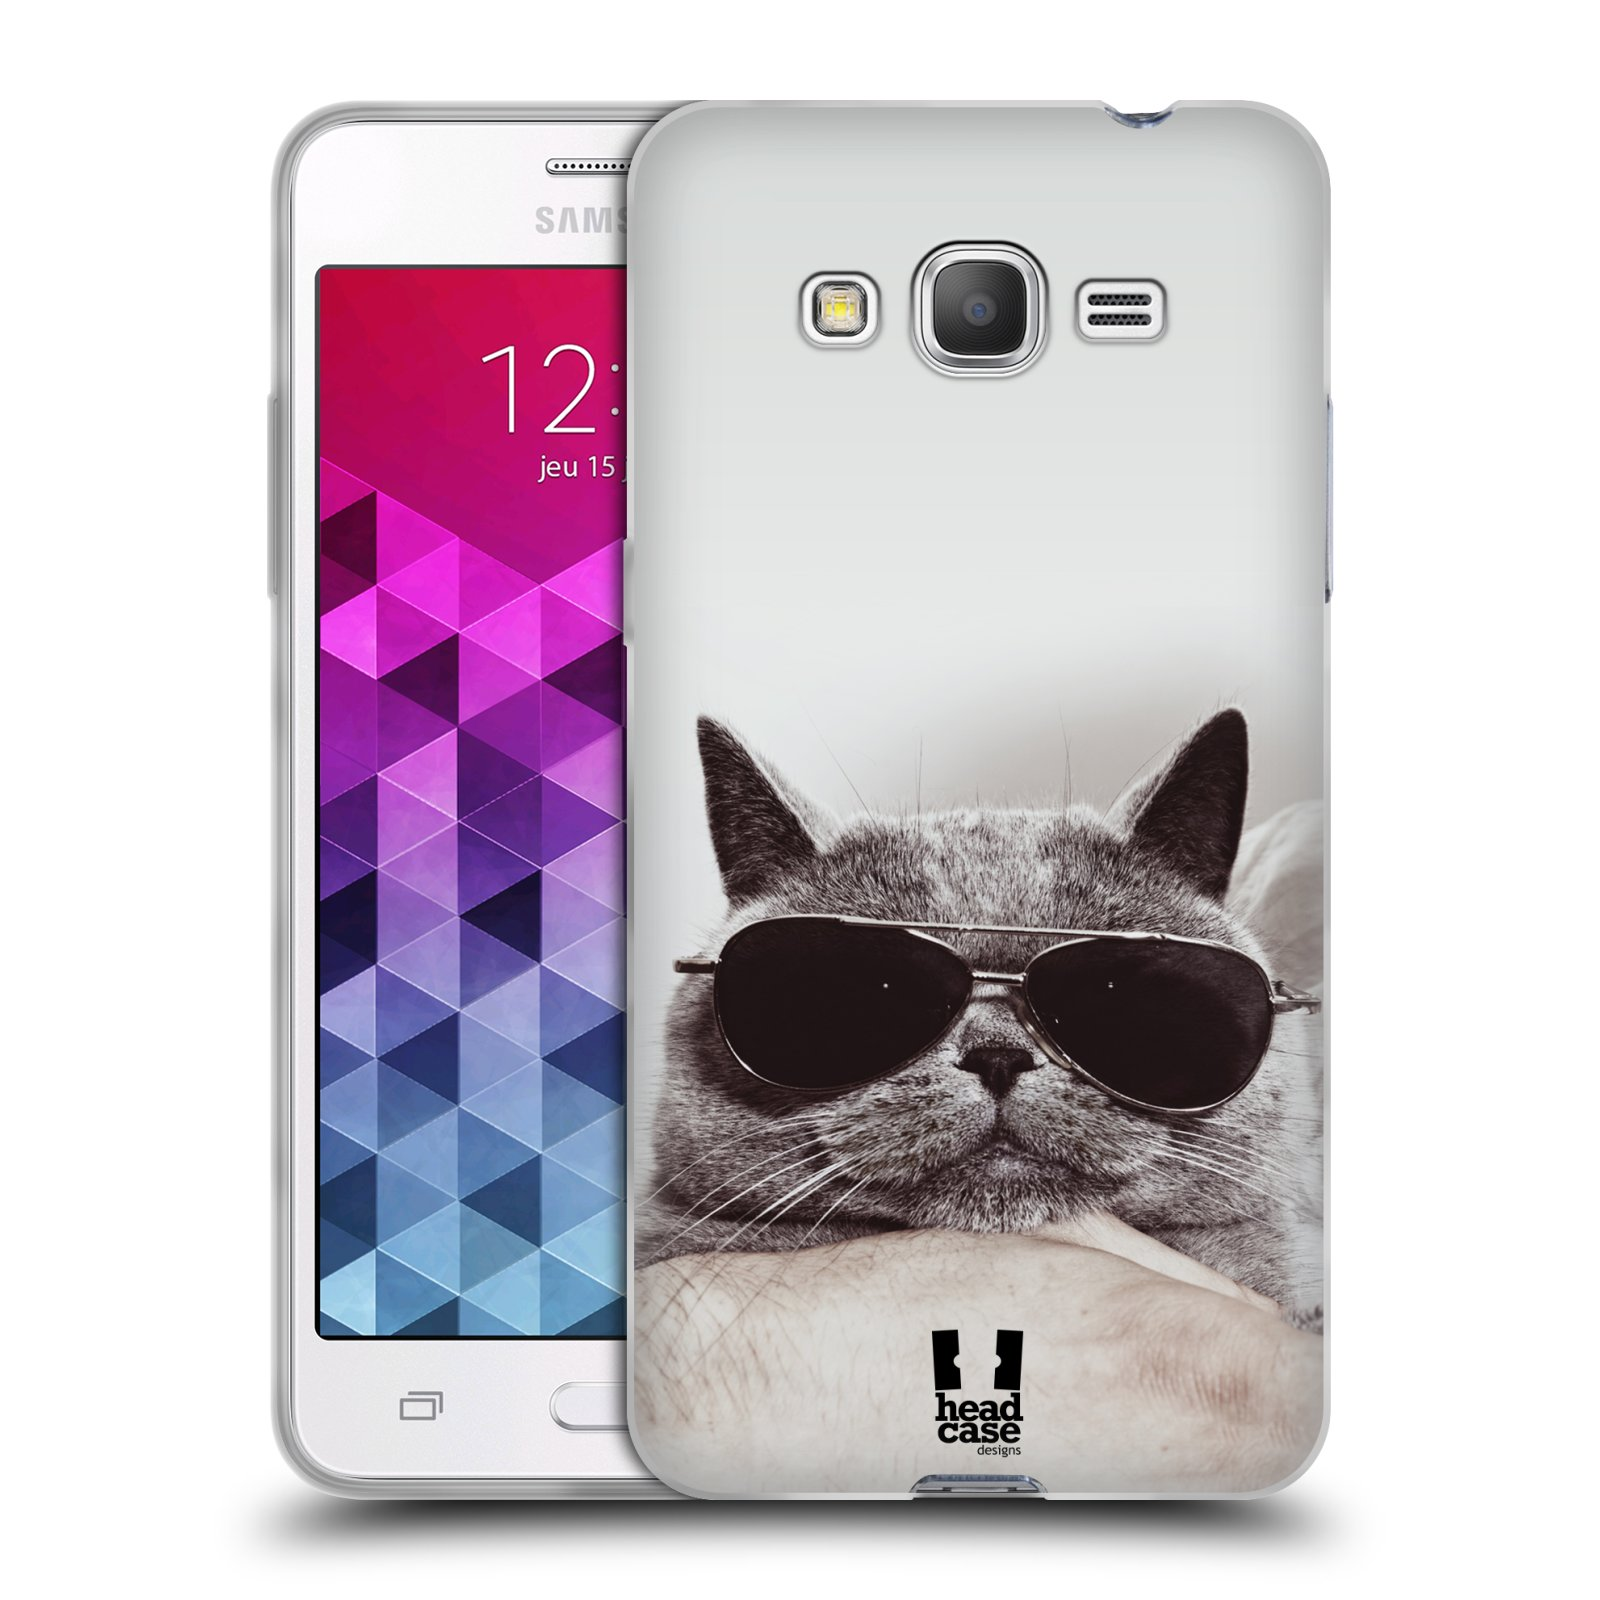 HEAD CASE CATS SILICONE GEL CASE FOR SAMSUNG GALAXY GRAND PRIME 3G DUOS